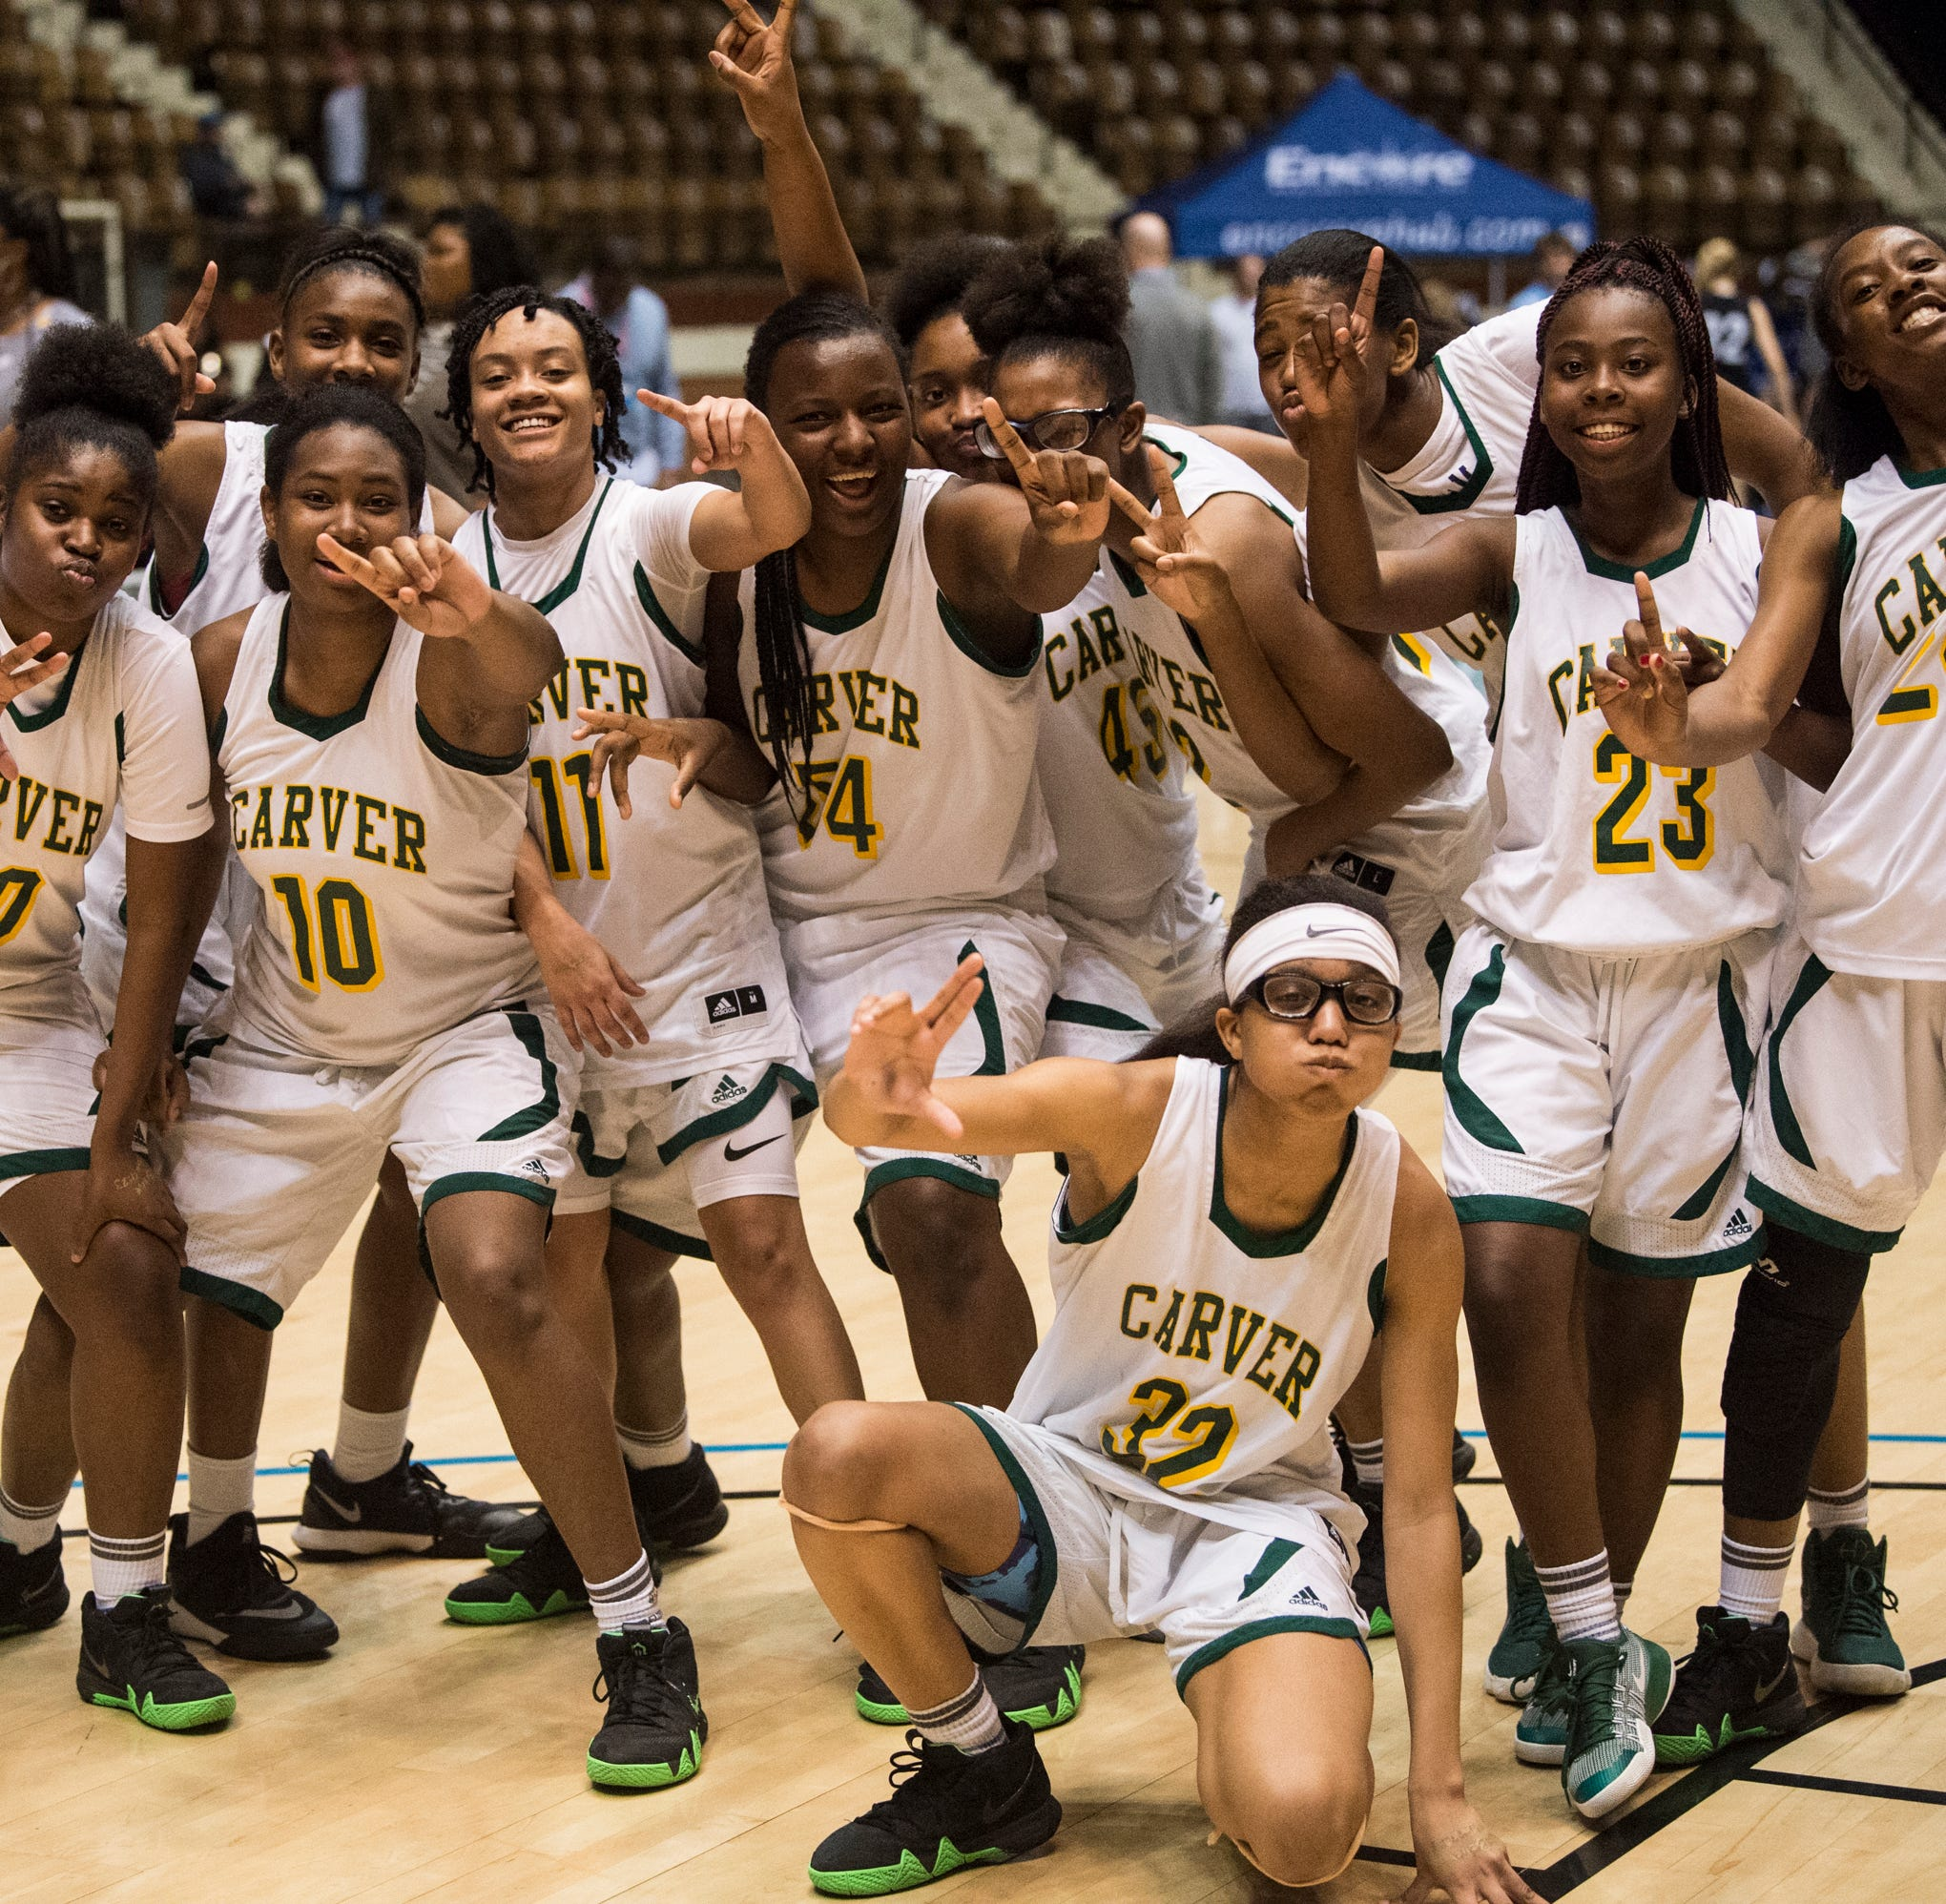 Strike a pose: Carver rolls into regional final